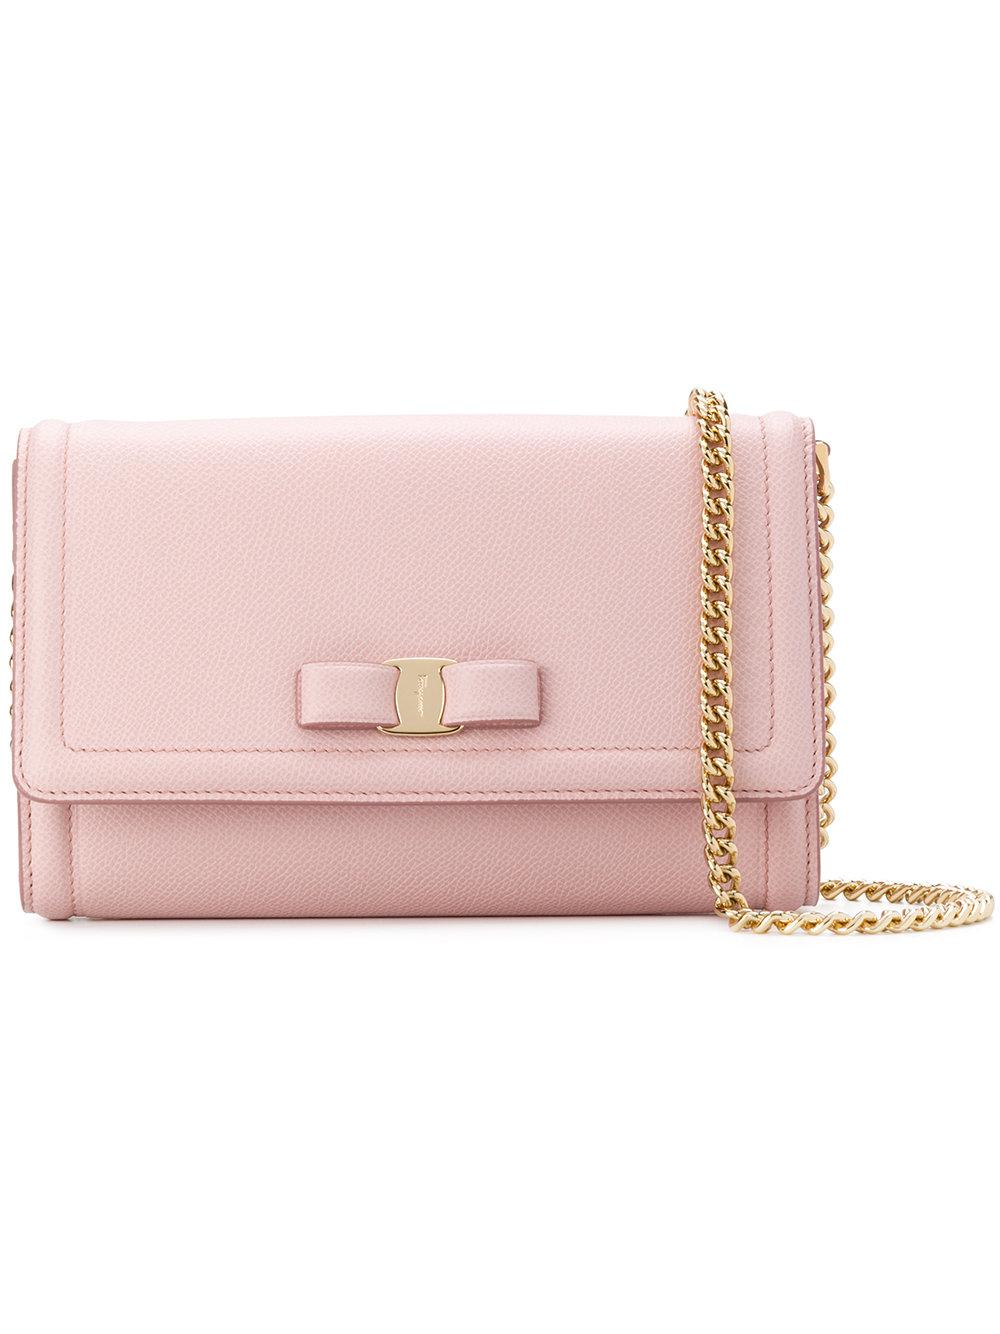 d8baf74522 Lyst - Ferragamo Vara Flap Bag in Pink - Save 1%